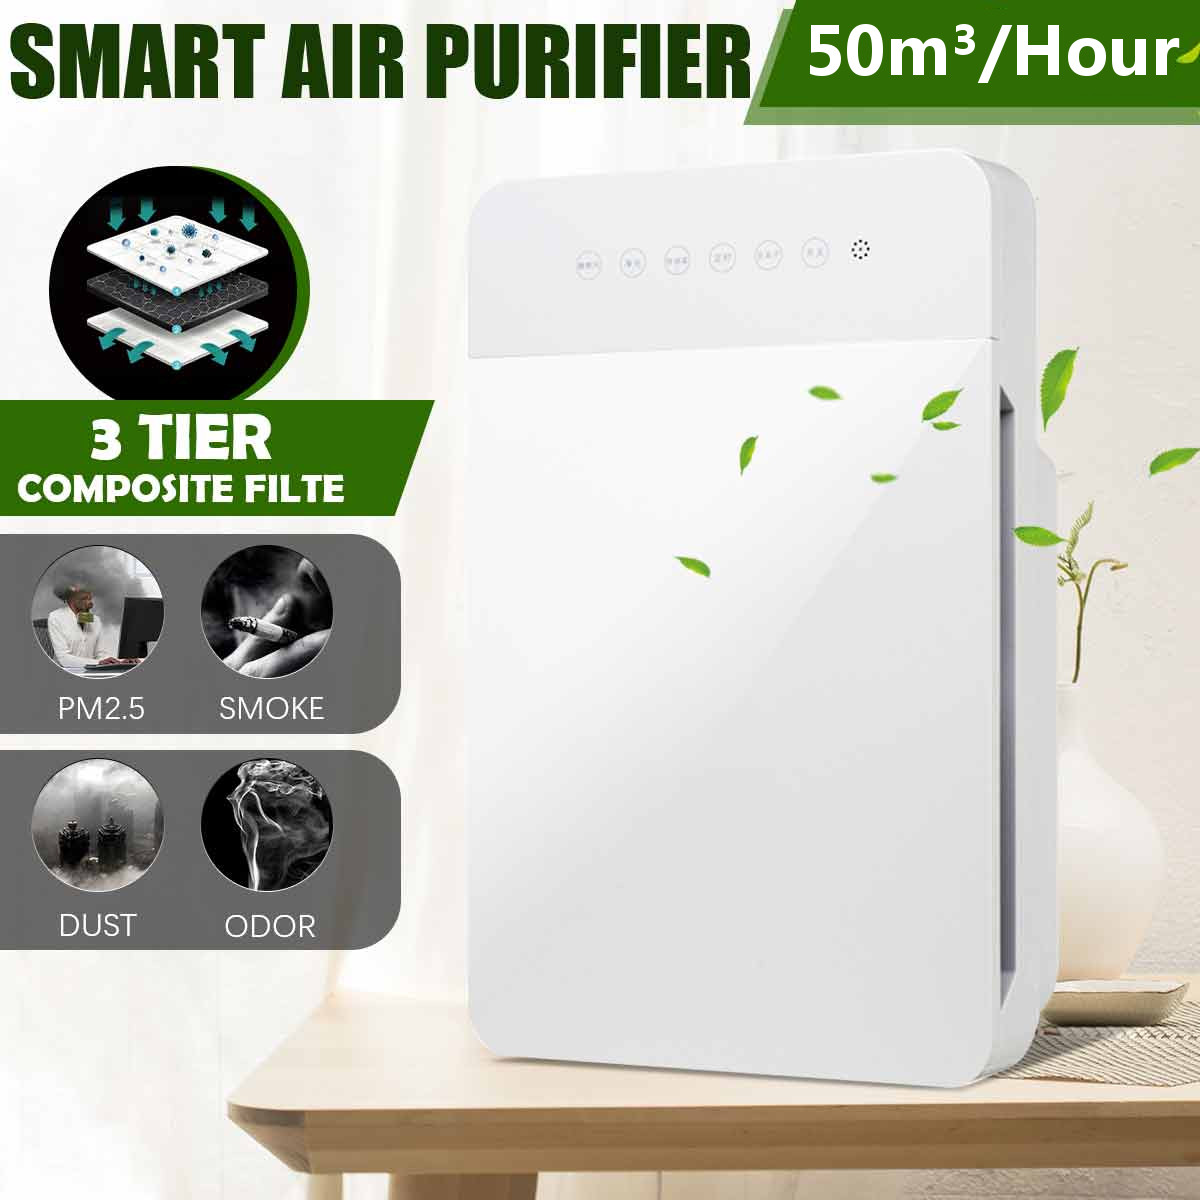 220V 50HZ Air Purifier Negative Ion PM2.5 Dust Home Indoor Purifier Smoke Remove Formaldehyde Cleaning Odor Removal Home Filter